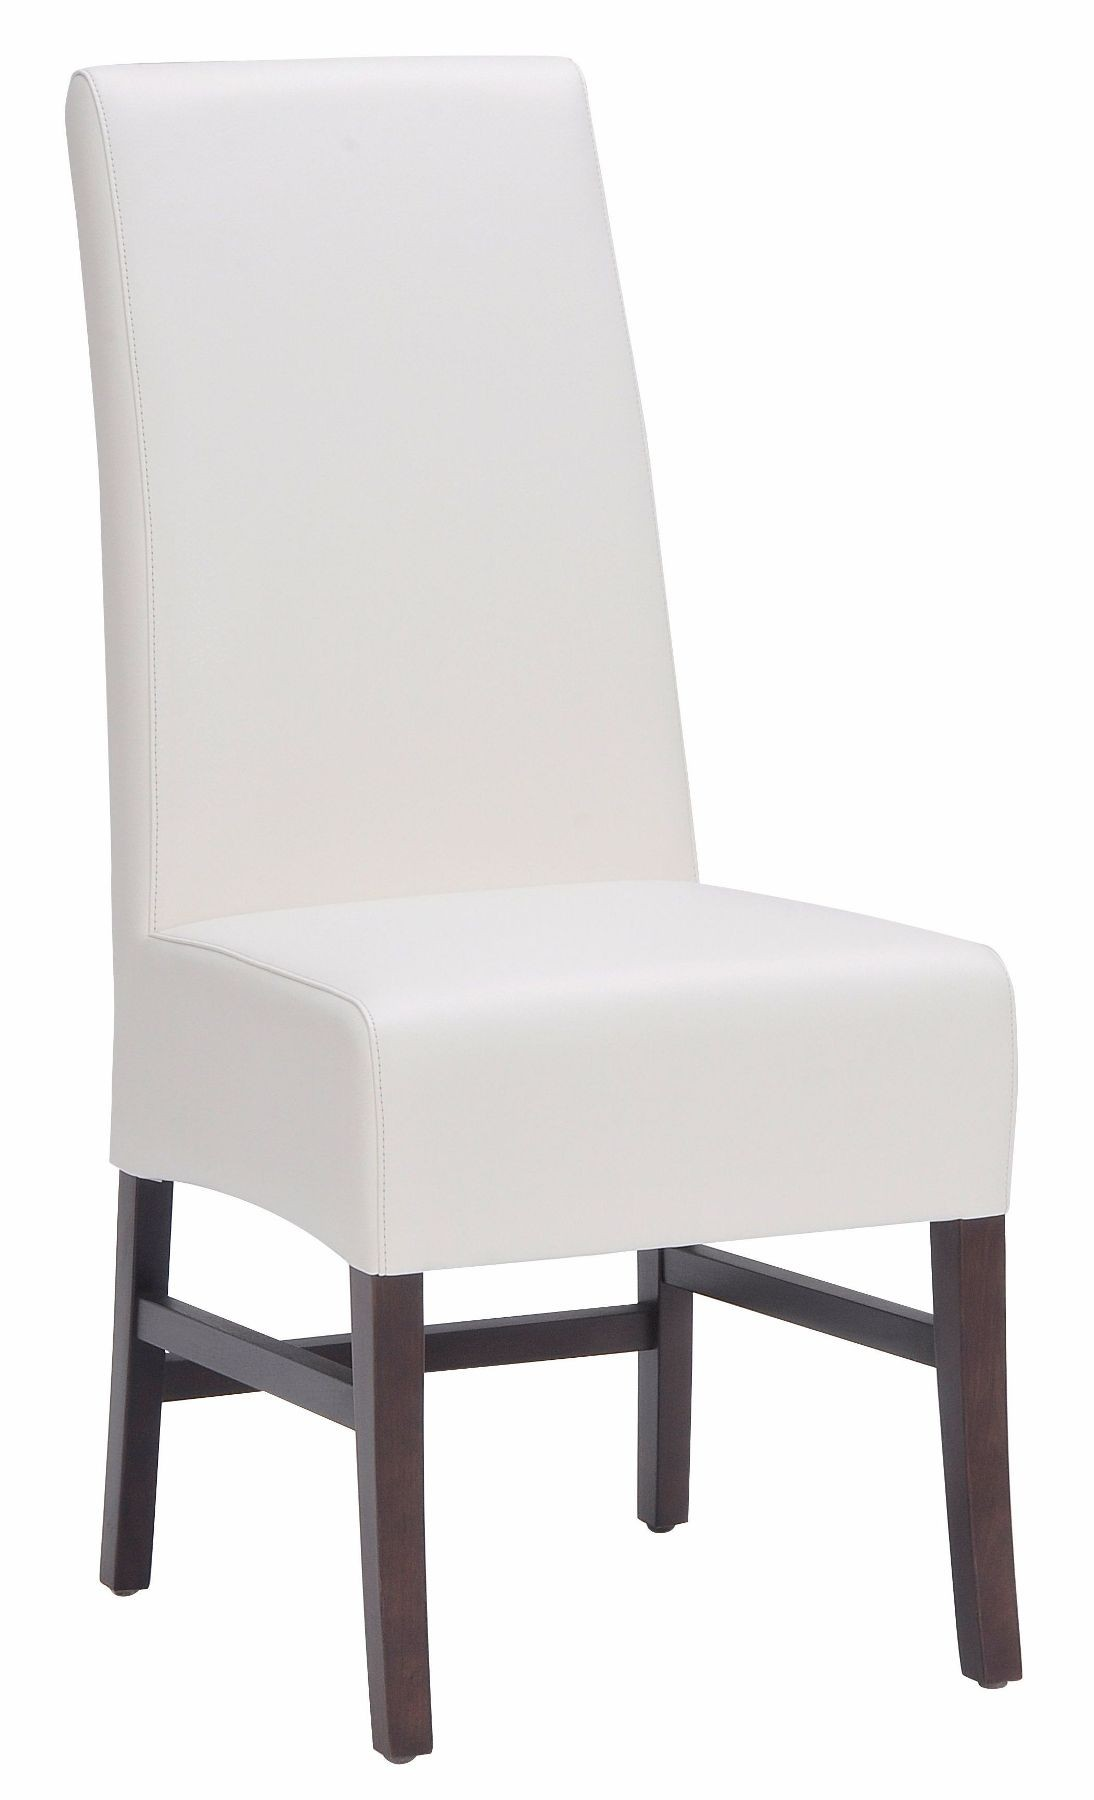 Ivory Dining Chairs Habitat Ivory Dining Chair Set Of 2 From Sunpan 29766